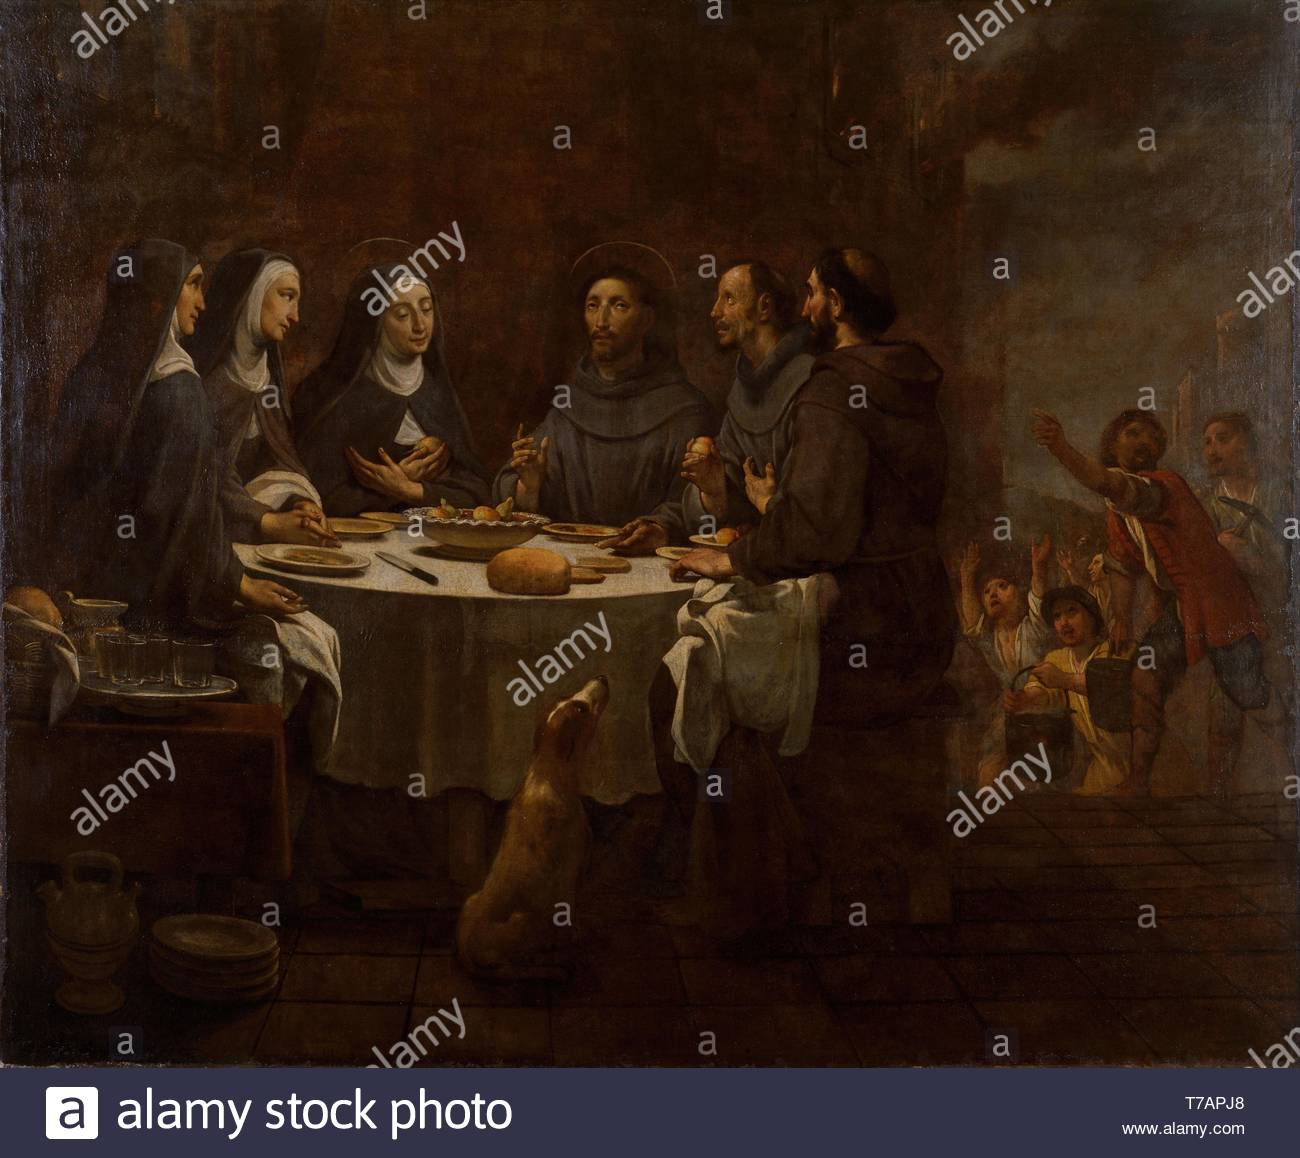 Antoni-Viladomat-Saint Francis and Saint Clare at Supper in the Convent of Saint Damian - Stock Image